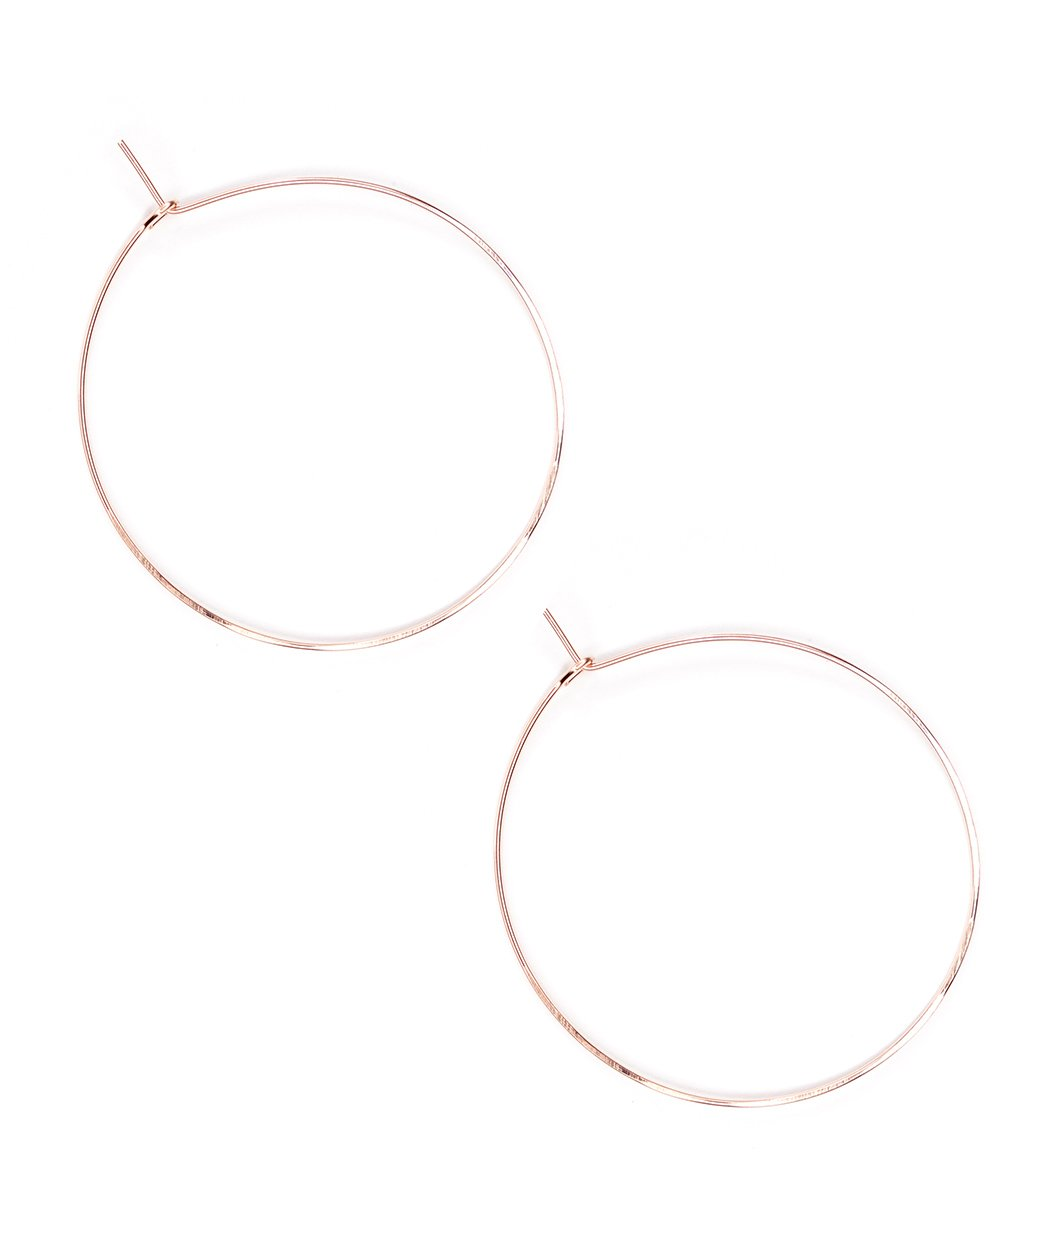 E Featherweight Hoop Large Rose Gold 1 1